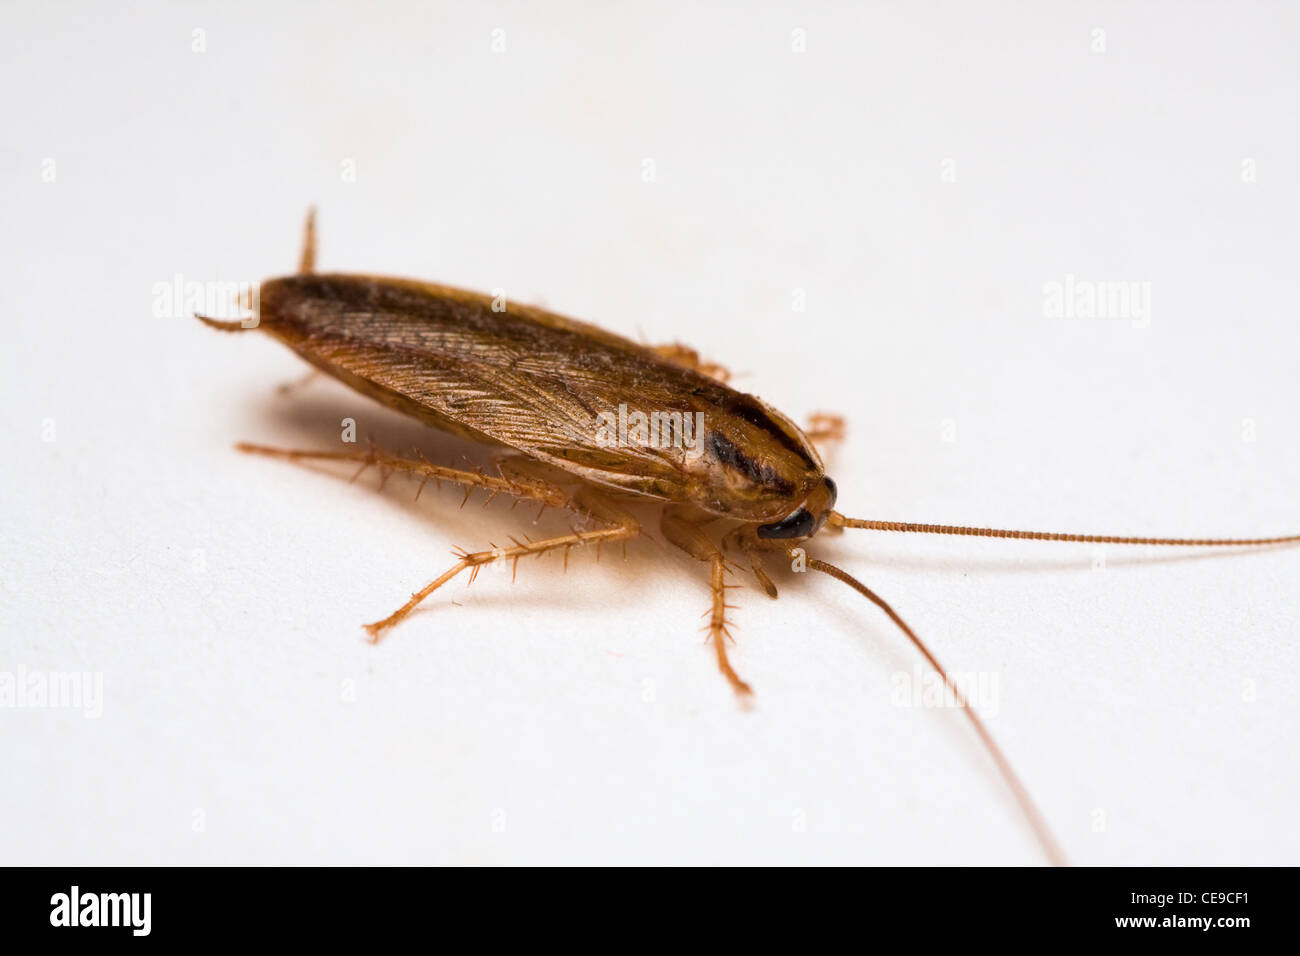 Adult Cockroach Stock Photos & Adult Cockroach Stock Images - Alamy